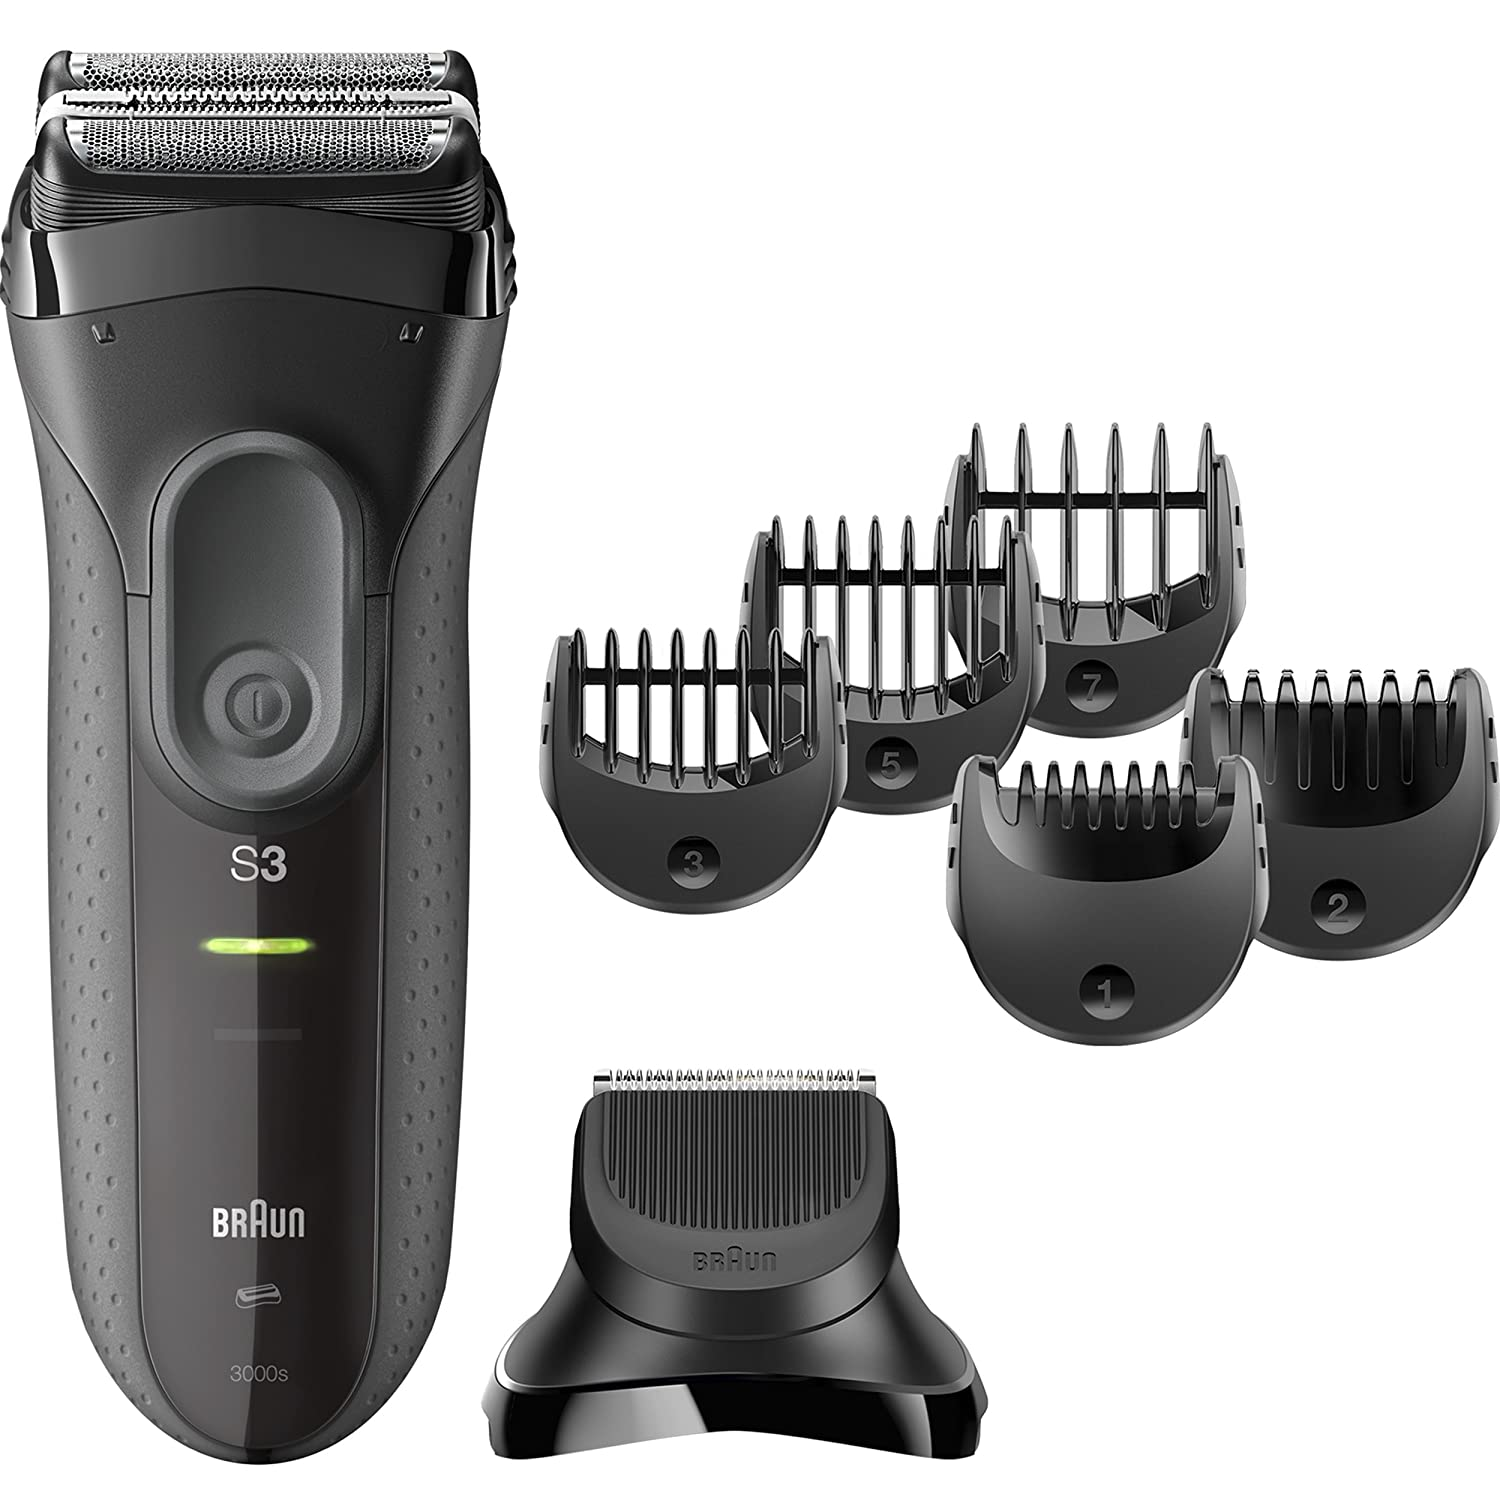 Braun Series 3 Shave & Style 3000BT 3-in-1 Electric Shaver/Razor for Men with Precision Beard Trimmer S3 3000 BT